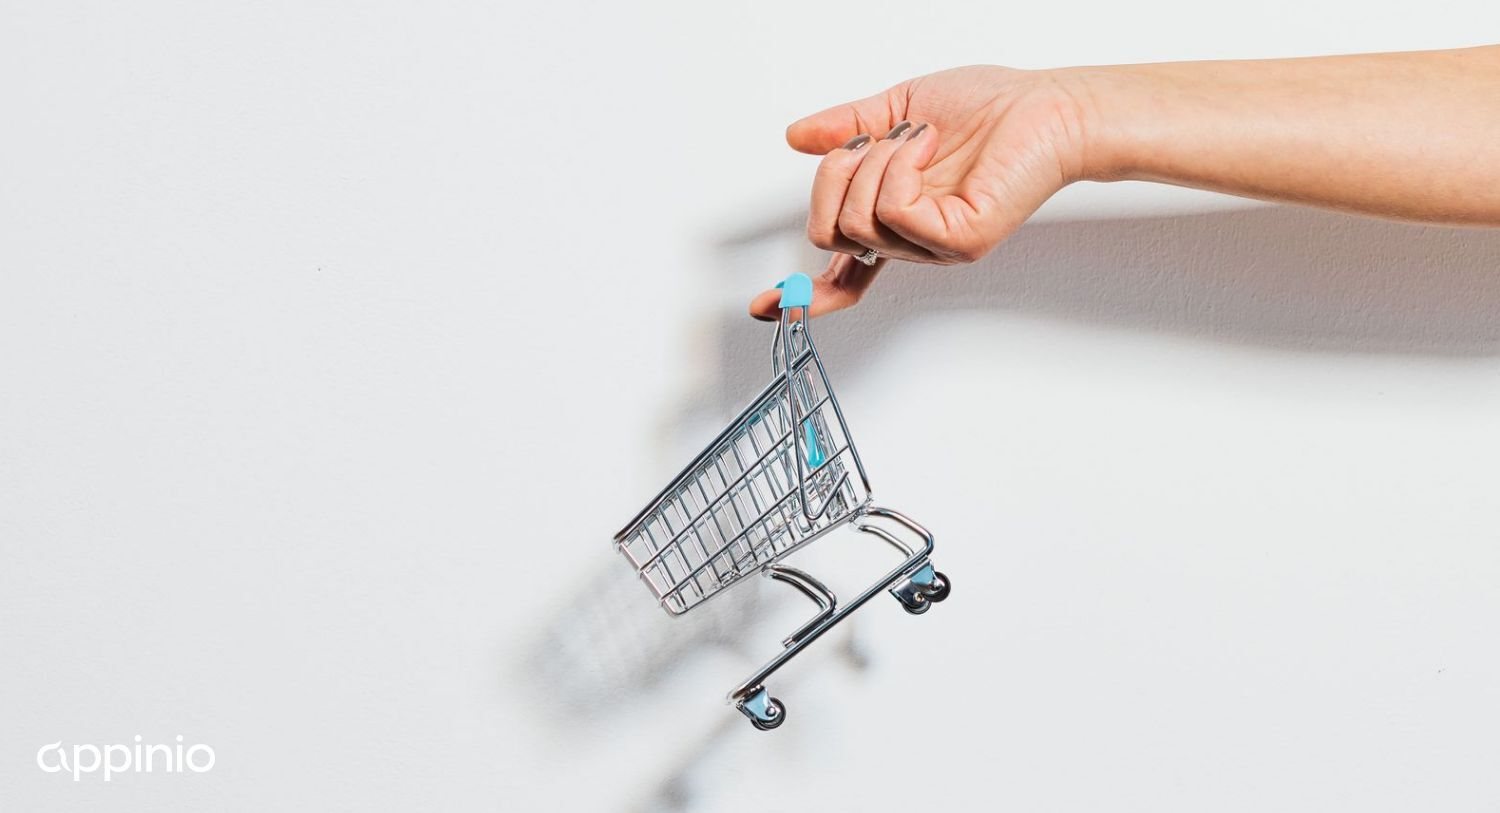 A miniature shopping cart being lifted by a person's hand.